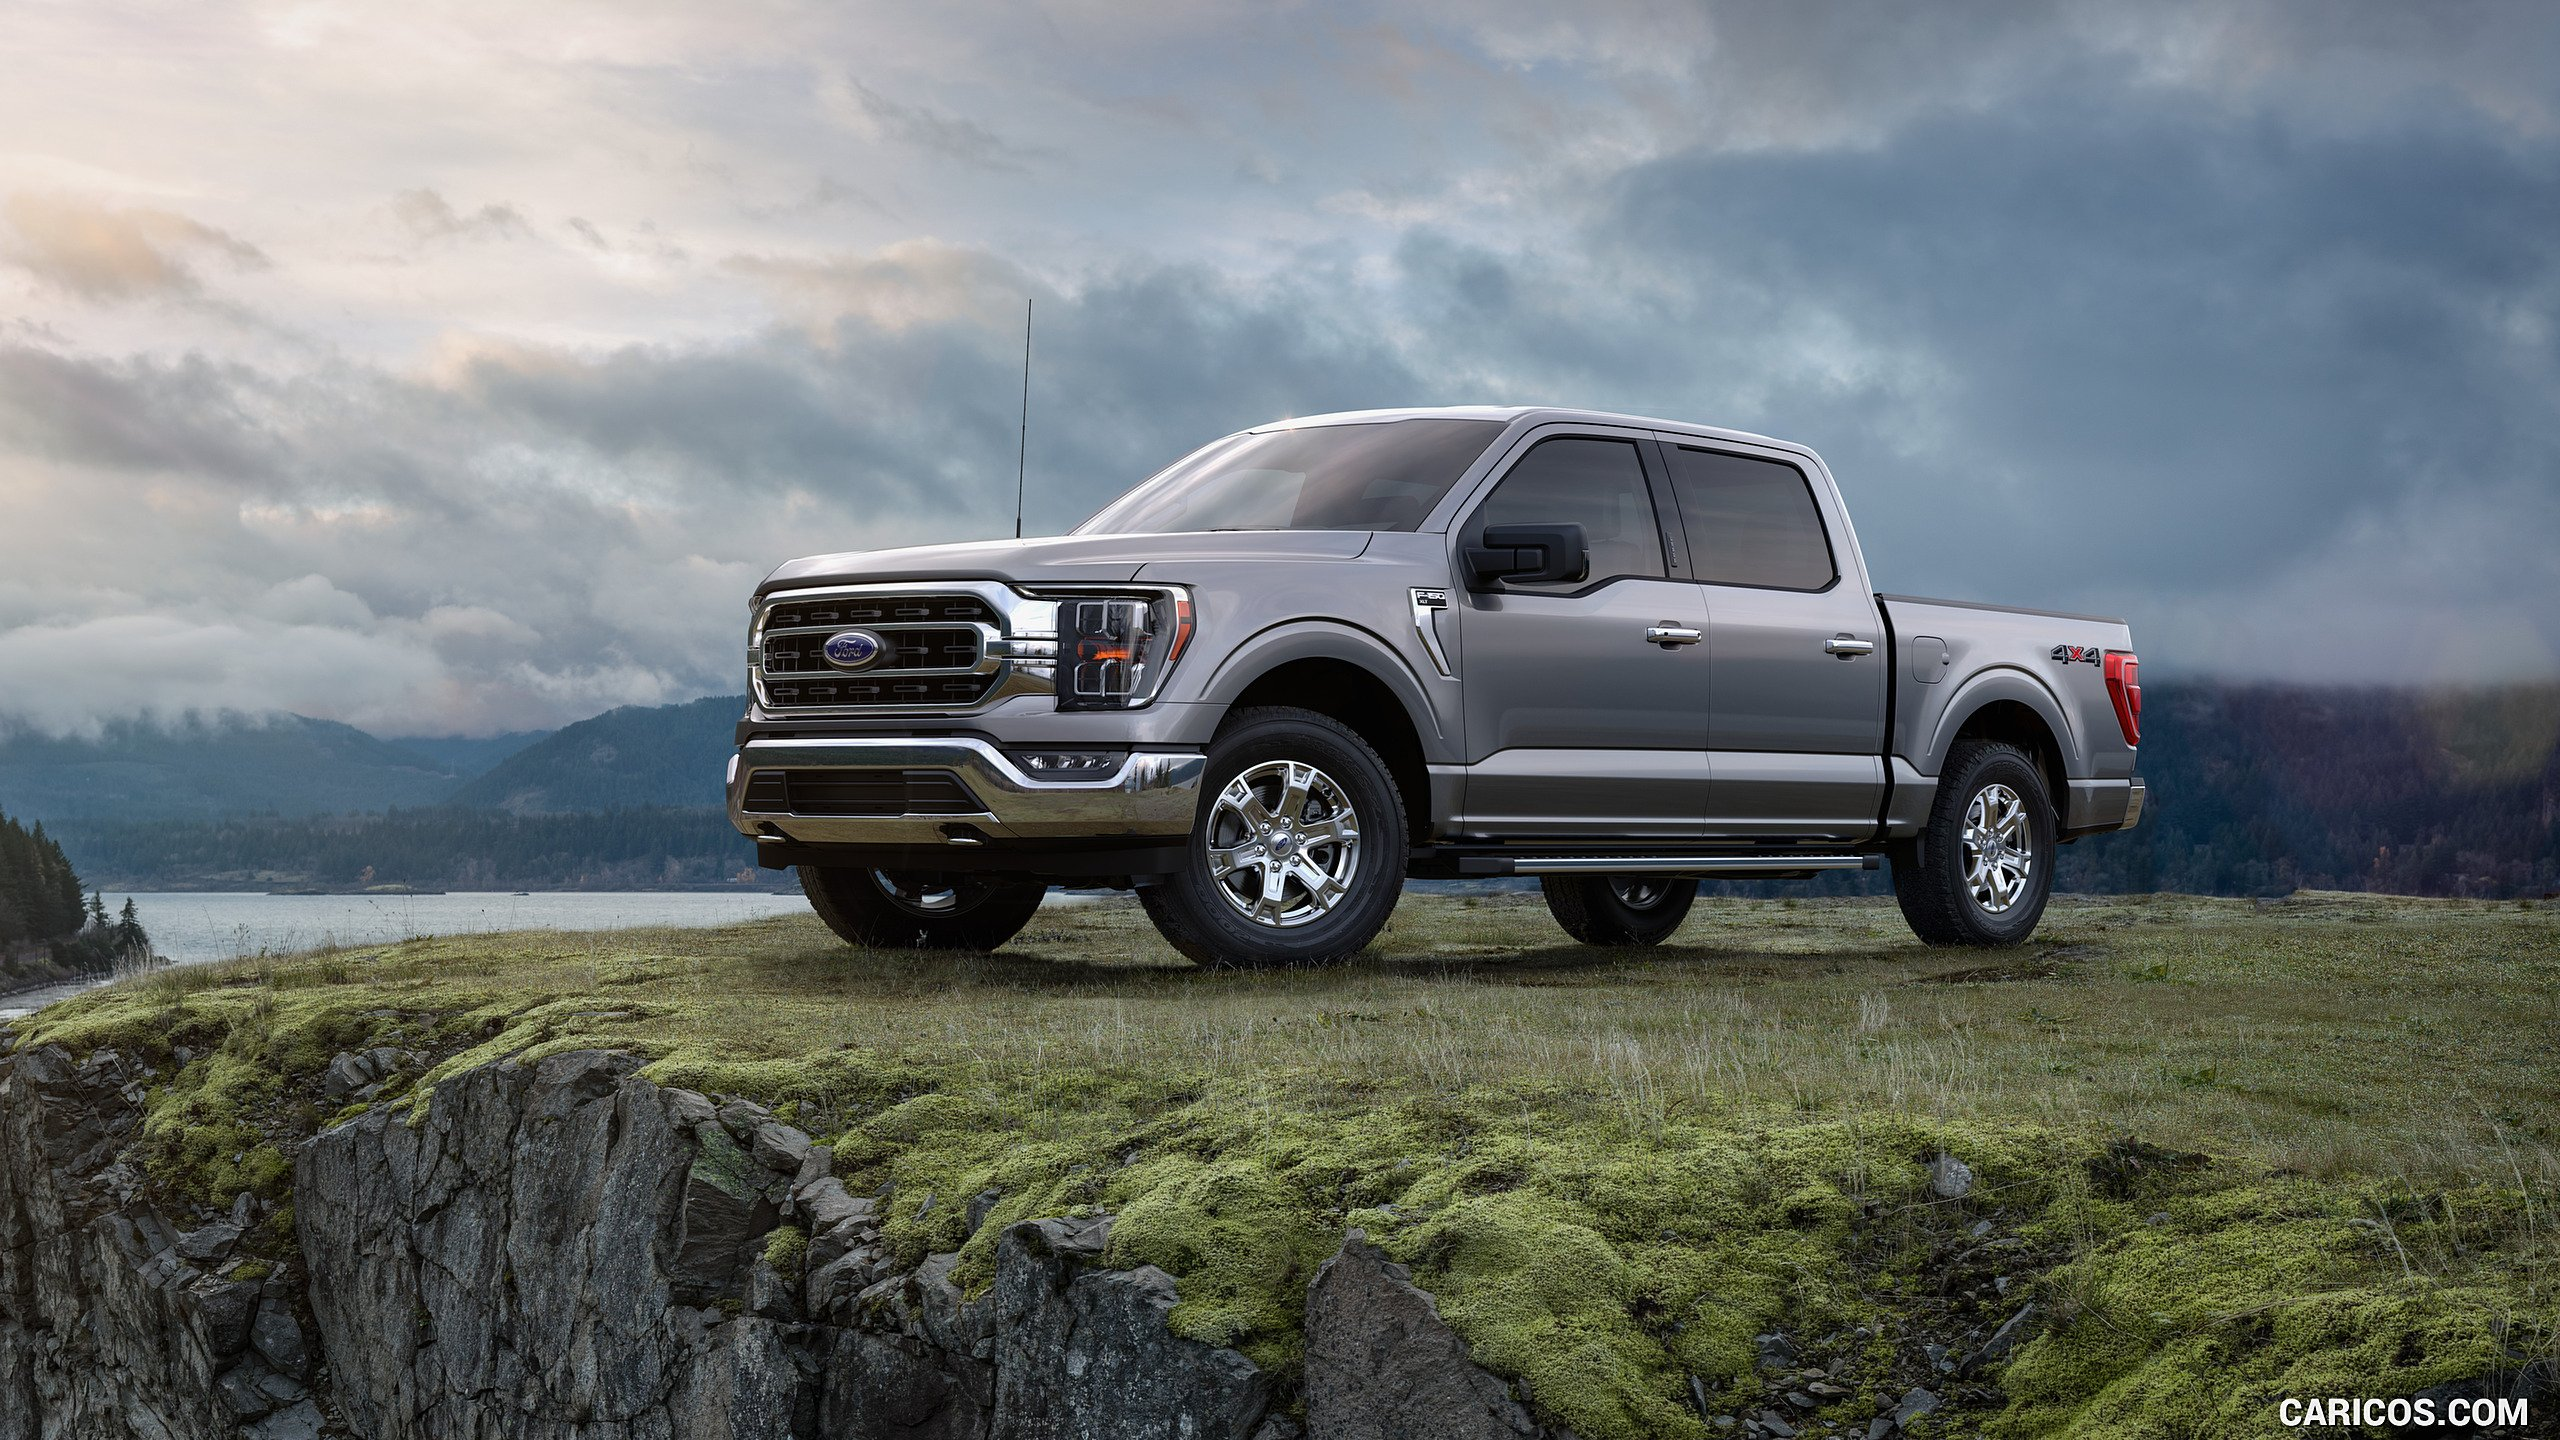 2021 Ford F 150 Platinum Color Iconic Silver   Front Three 2560x1440